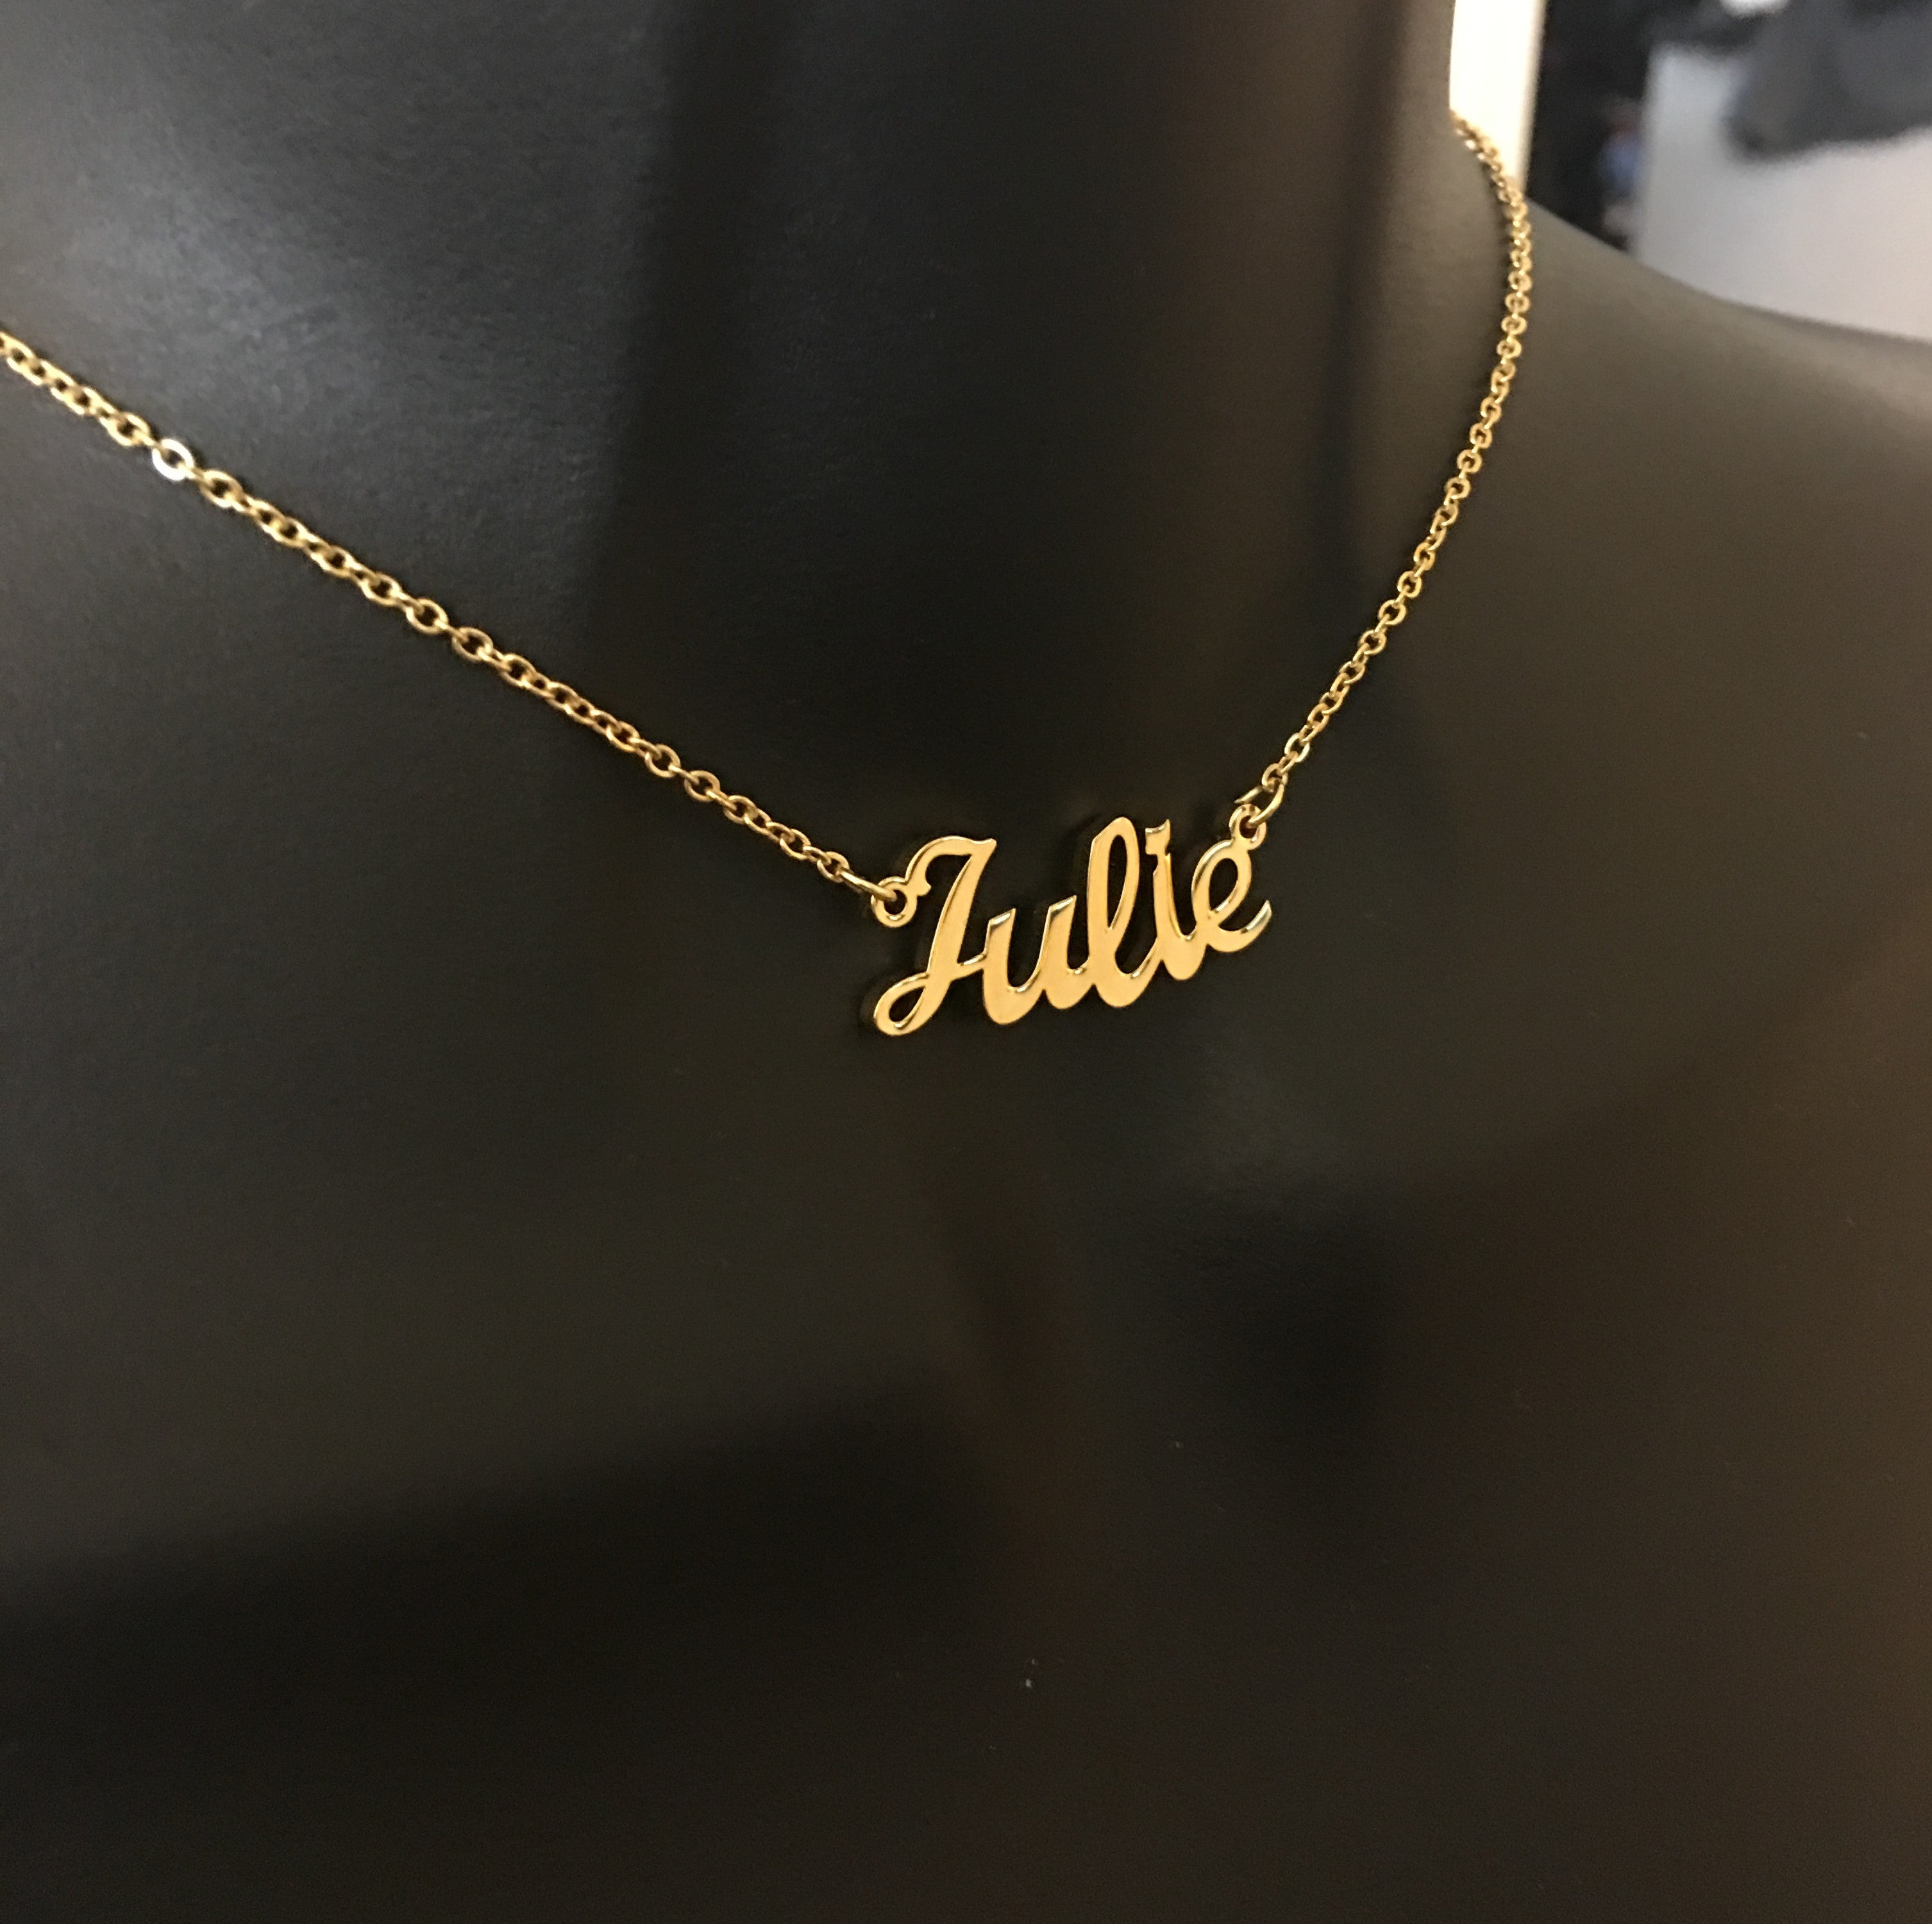 Personalized, curved name necklace